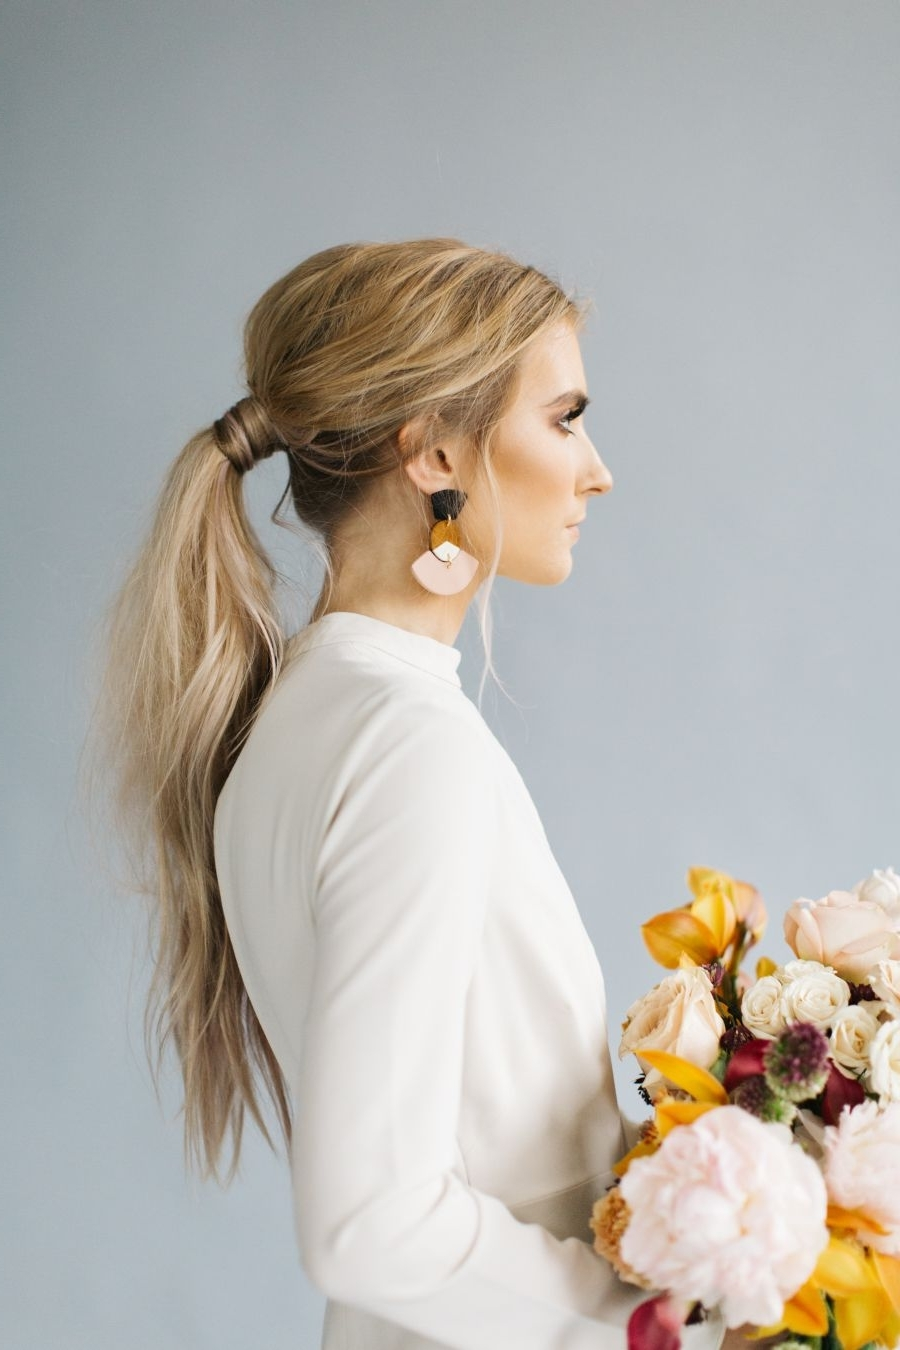 Trendy Classy Flower Studded Pony Hairstyles Regarding Stunning Inspo That Blurs The Line Between Modern And Romantic (View 18 of 20)